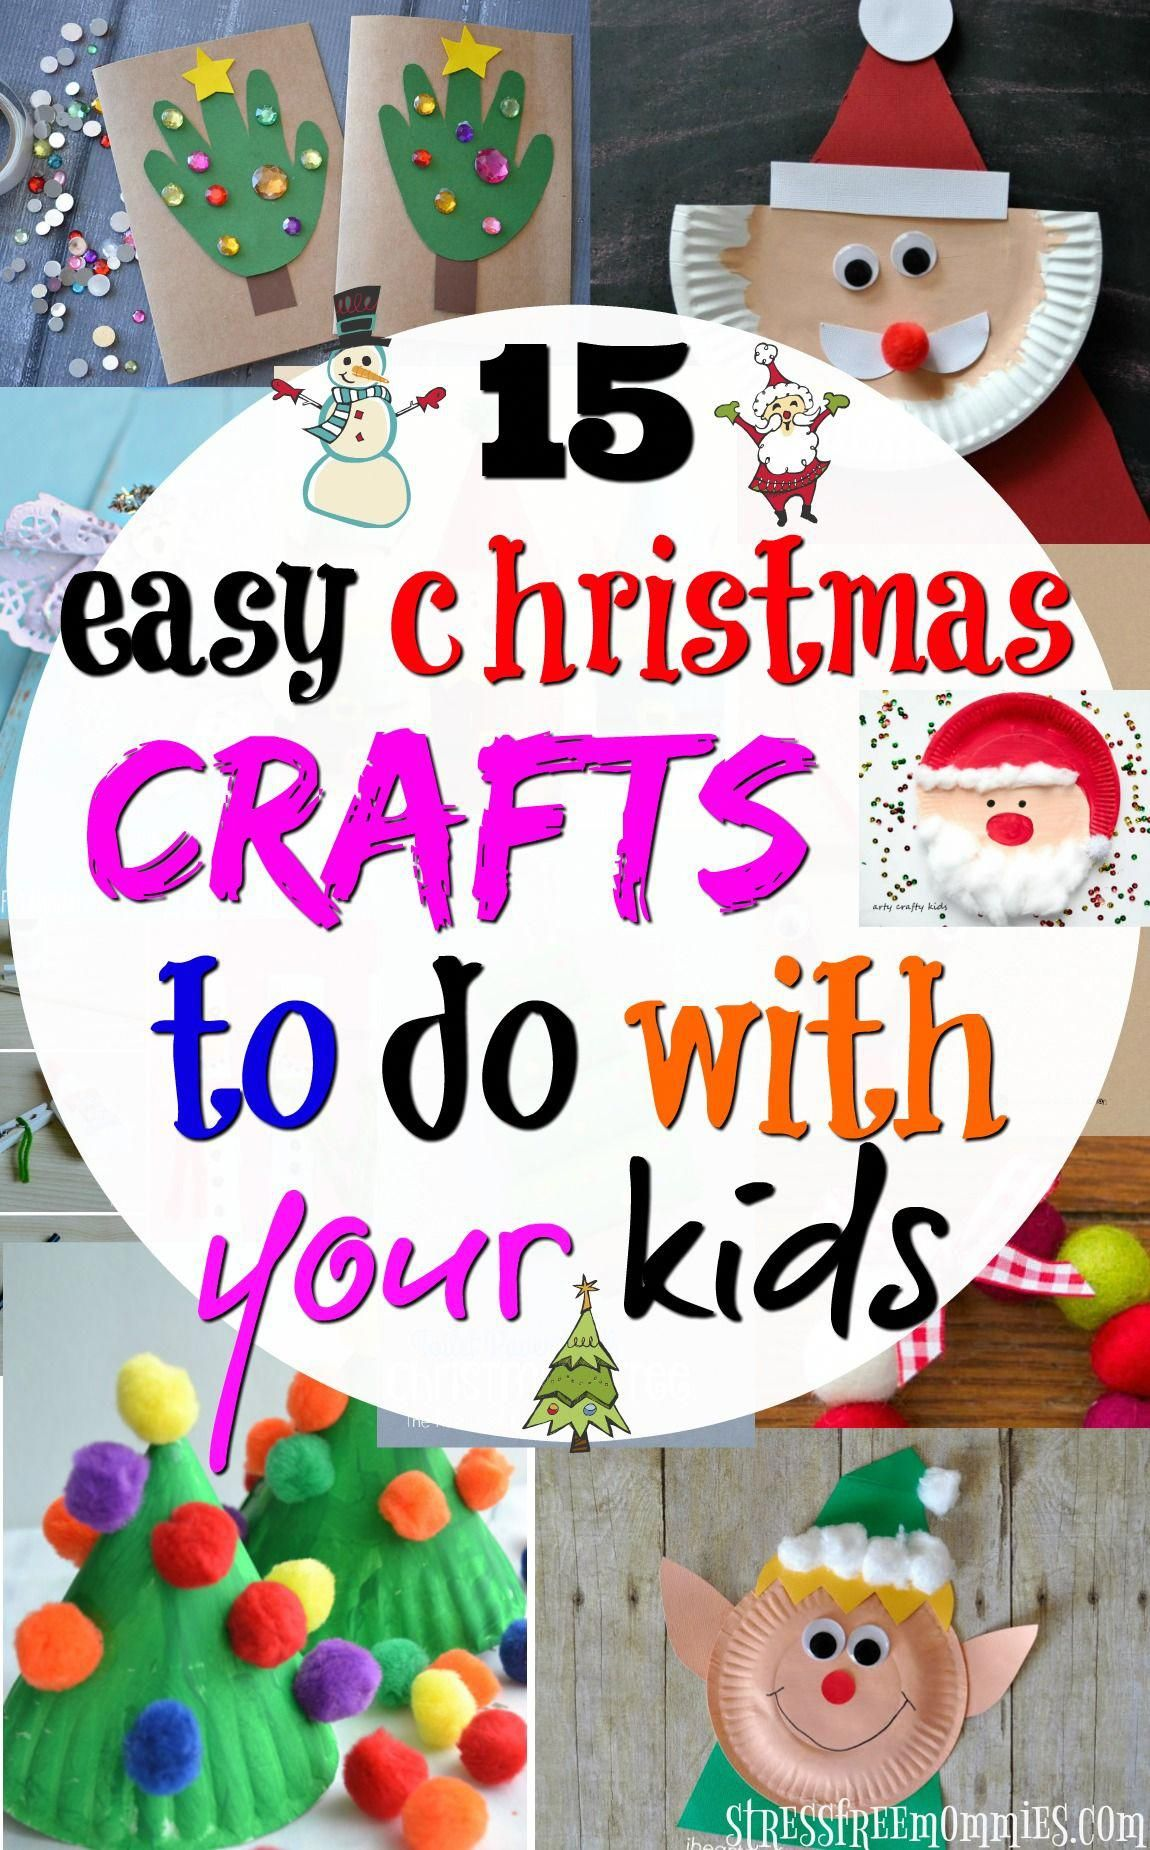 15 easy Christmas crafts to do with your kids Xmas2018